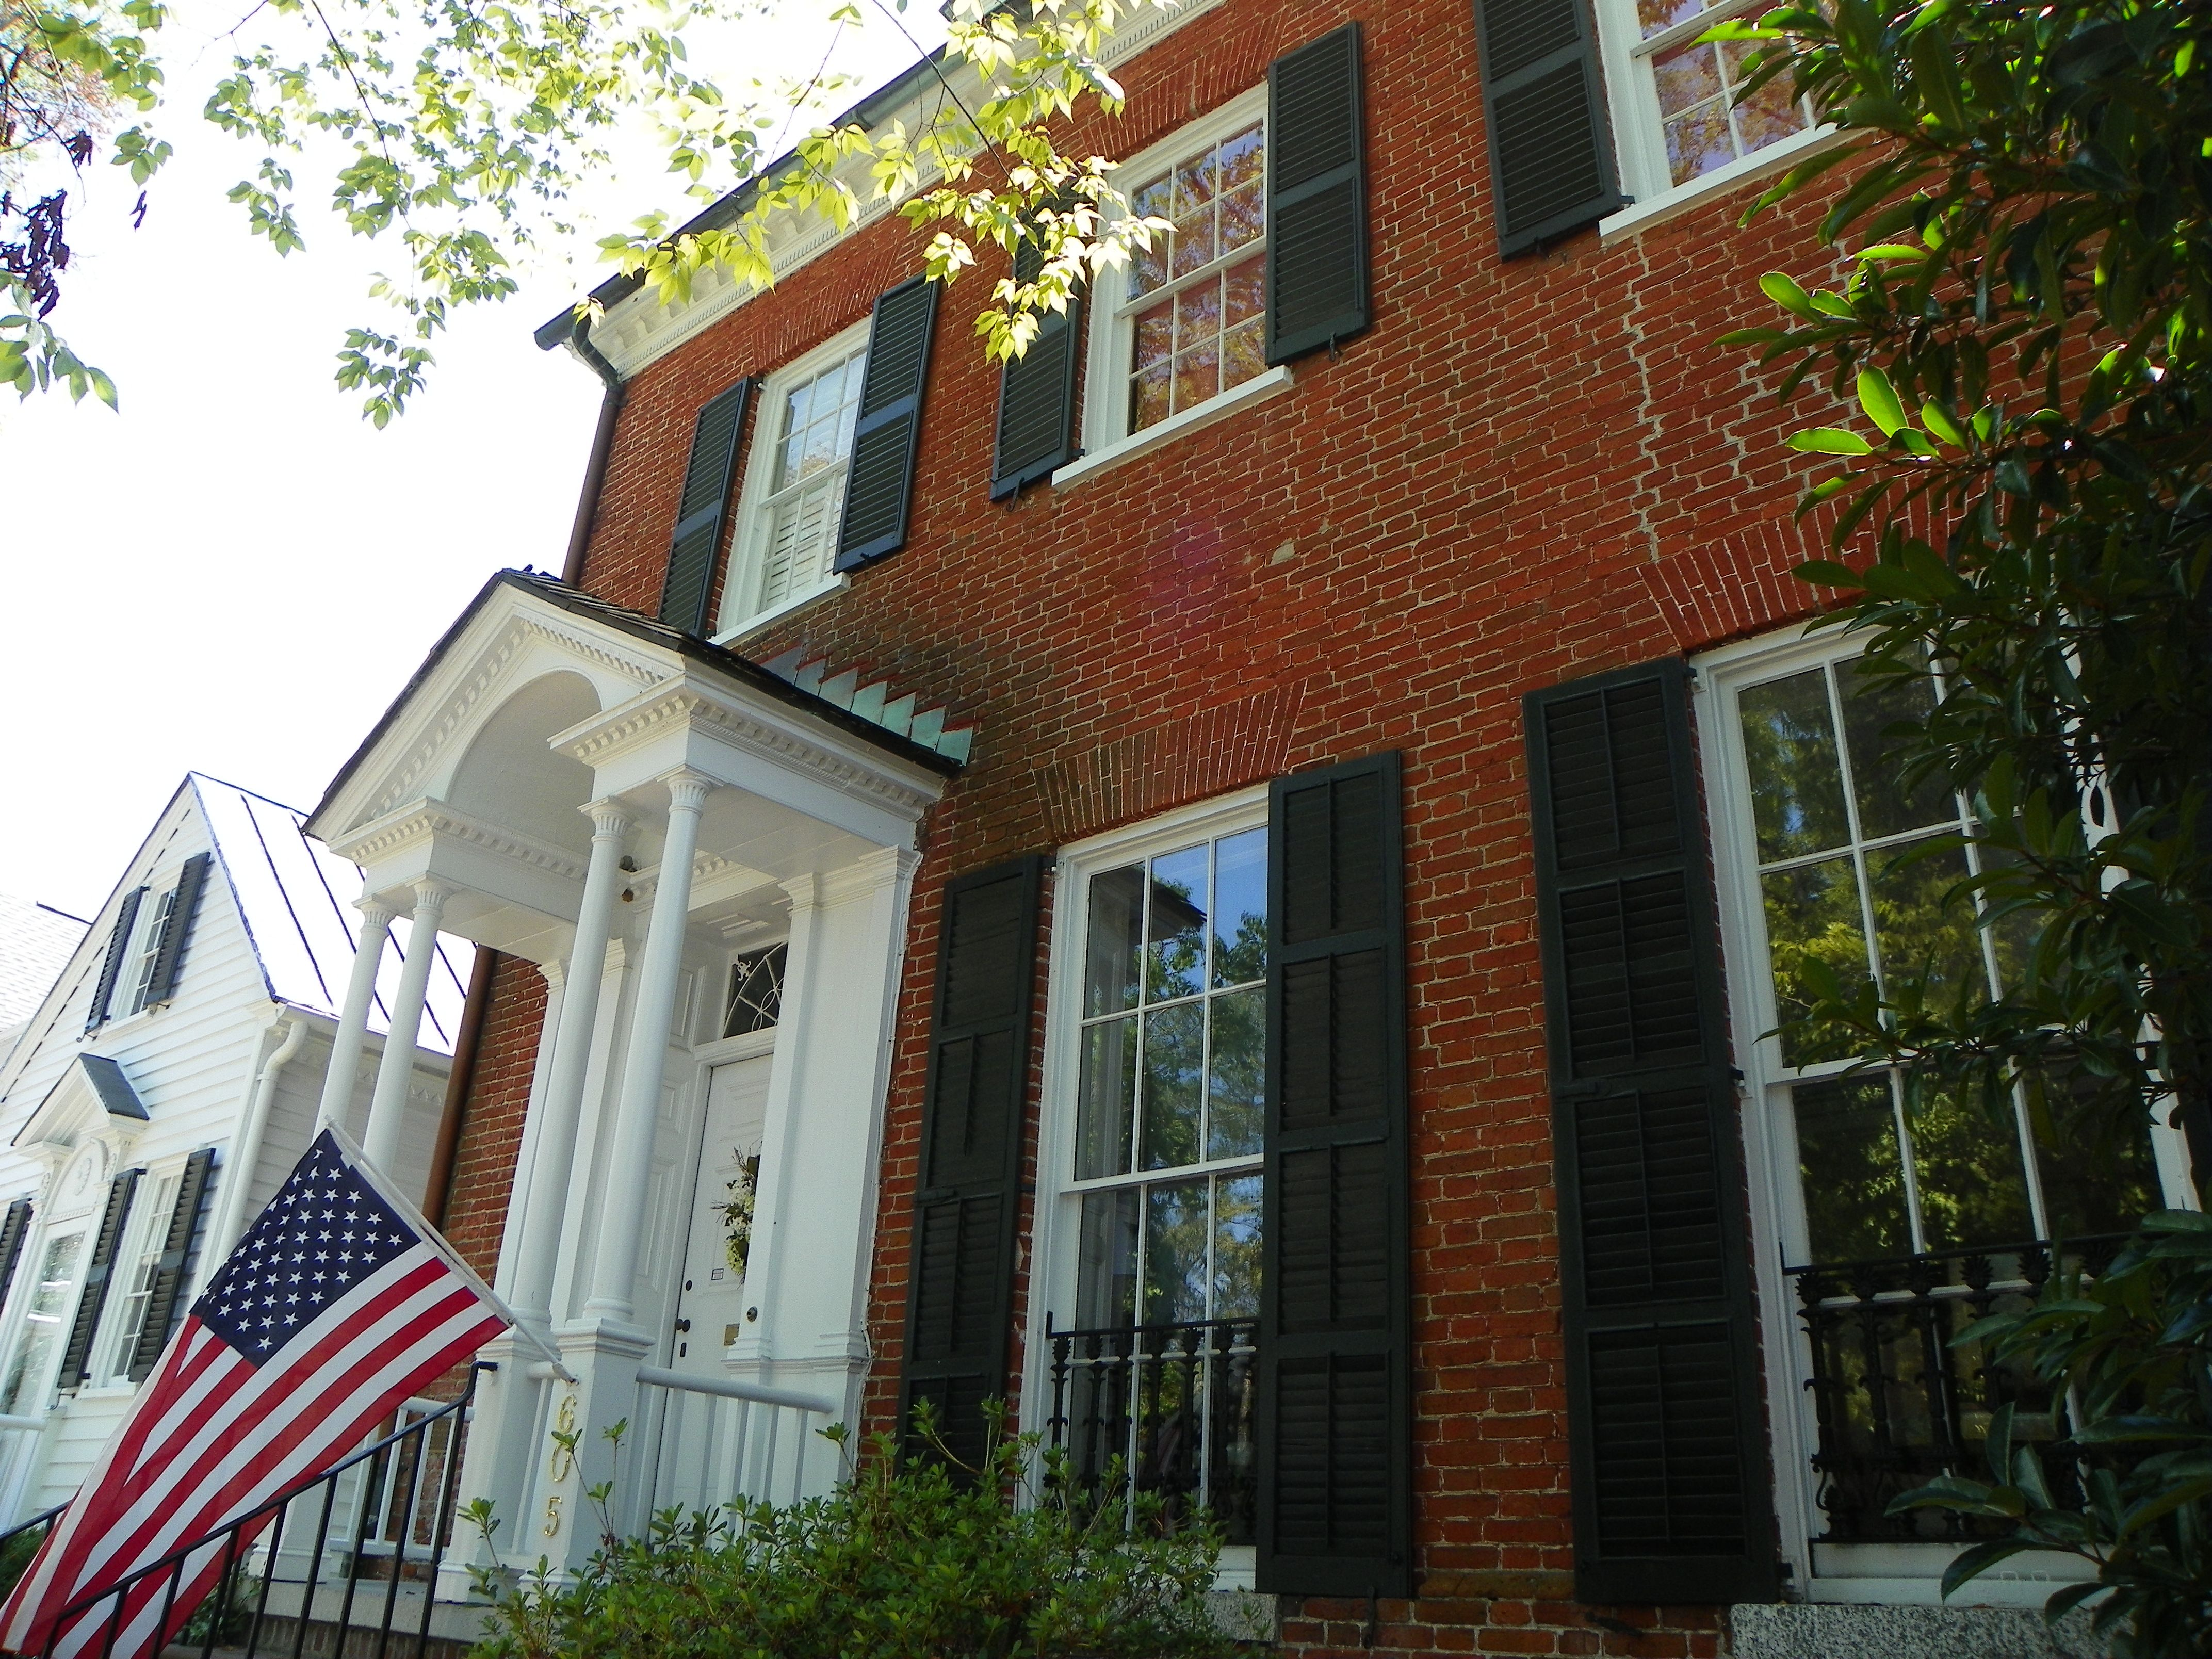 Colonial in New Bern, NC | Houses & Home Design Ideas | Pinterest